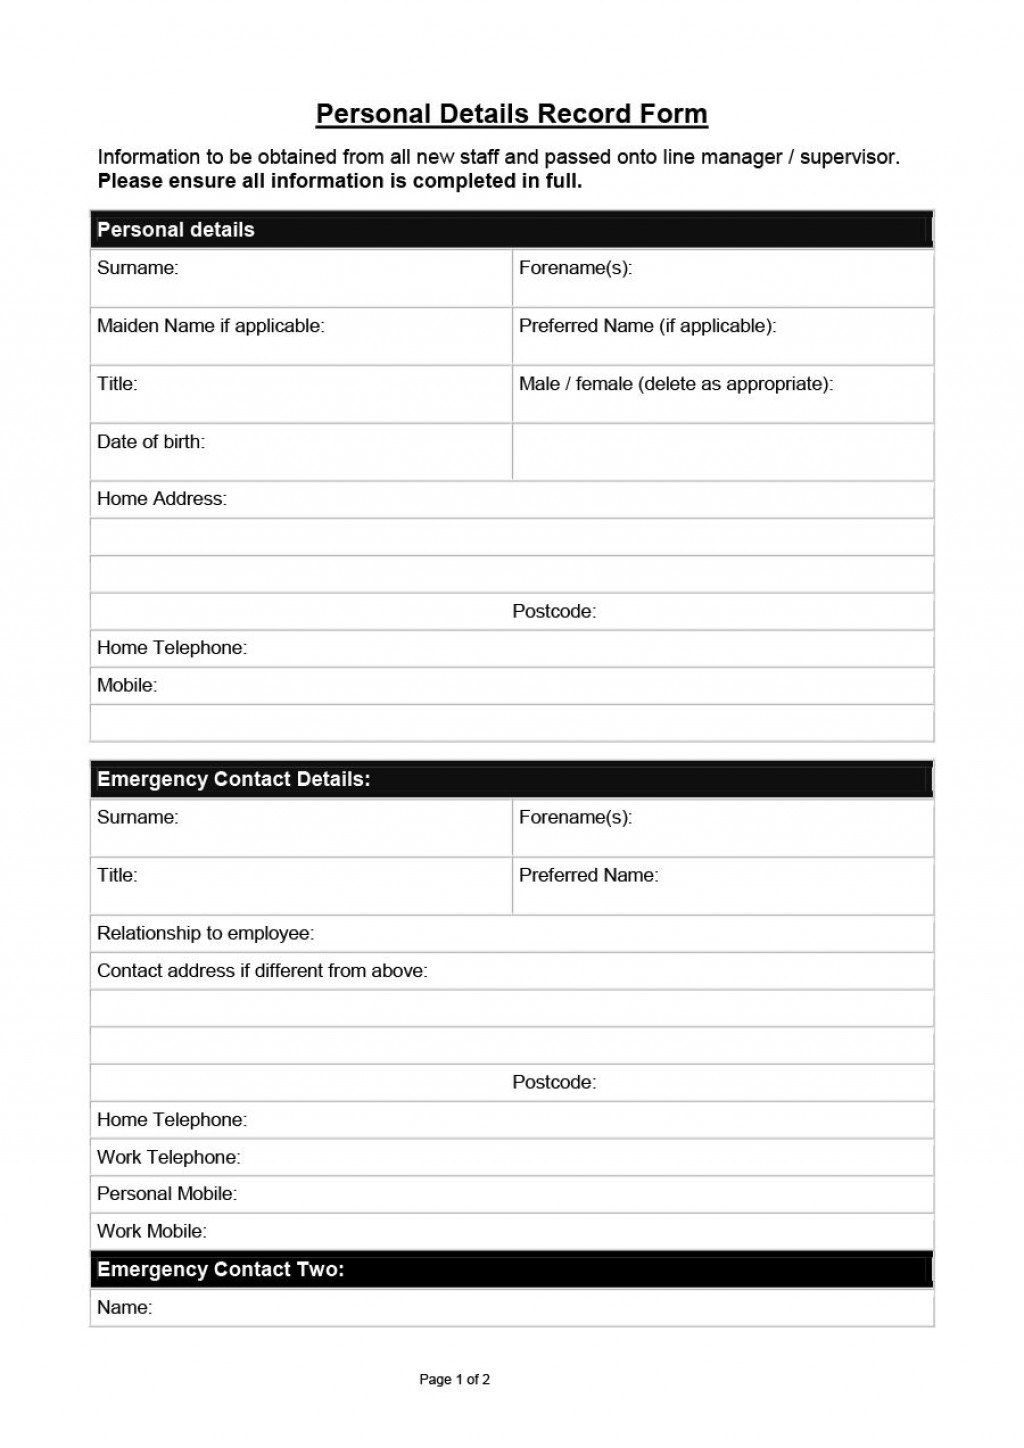 005 Awful New Hire Form Template Image  Application Document Checklist WordLarge